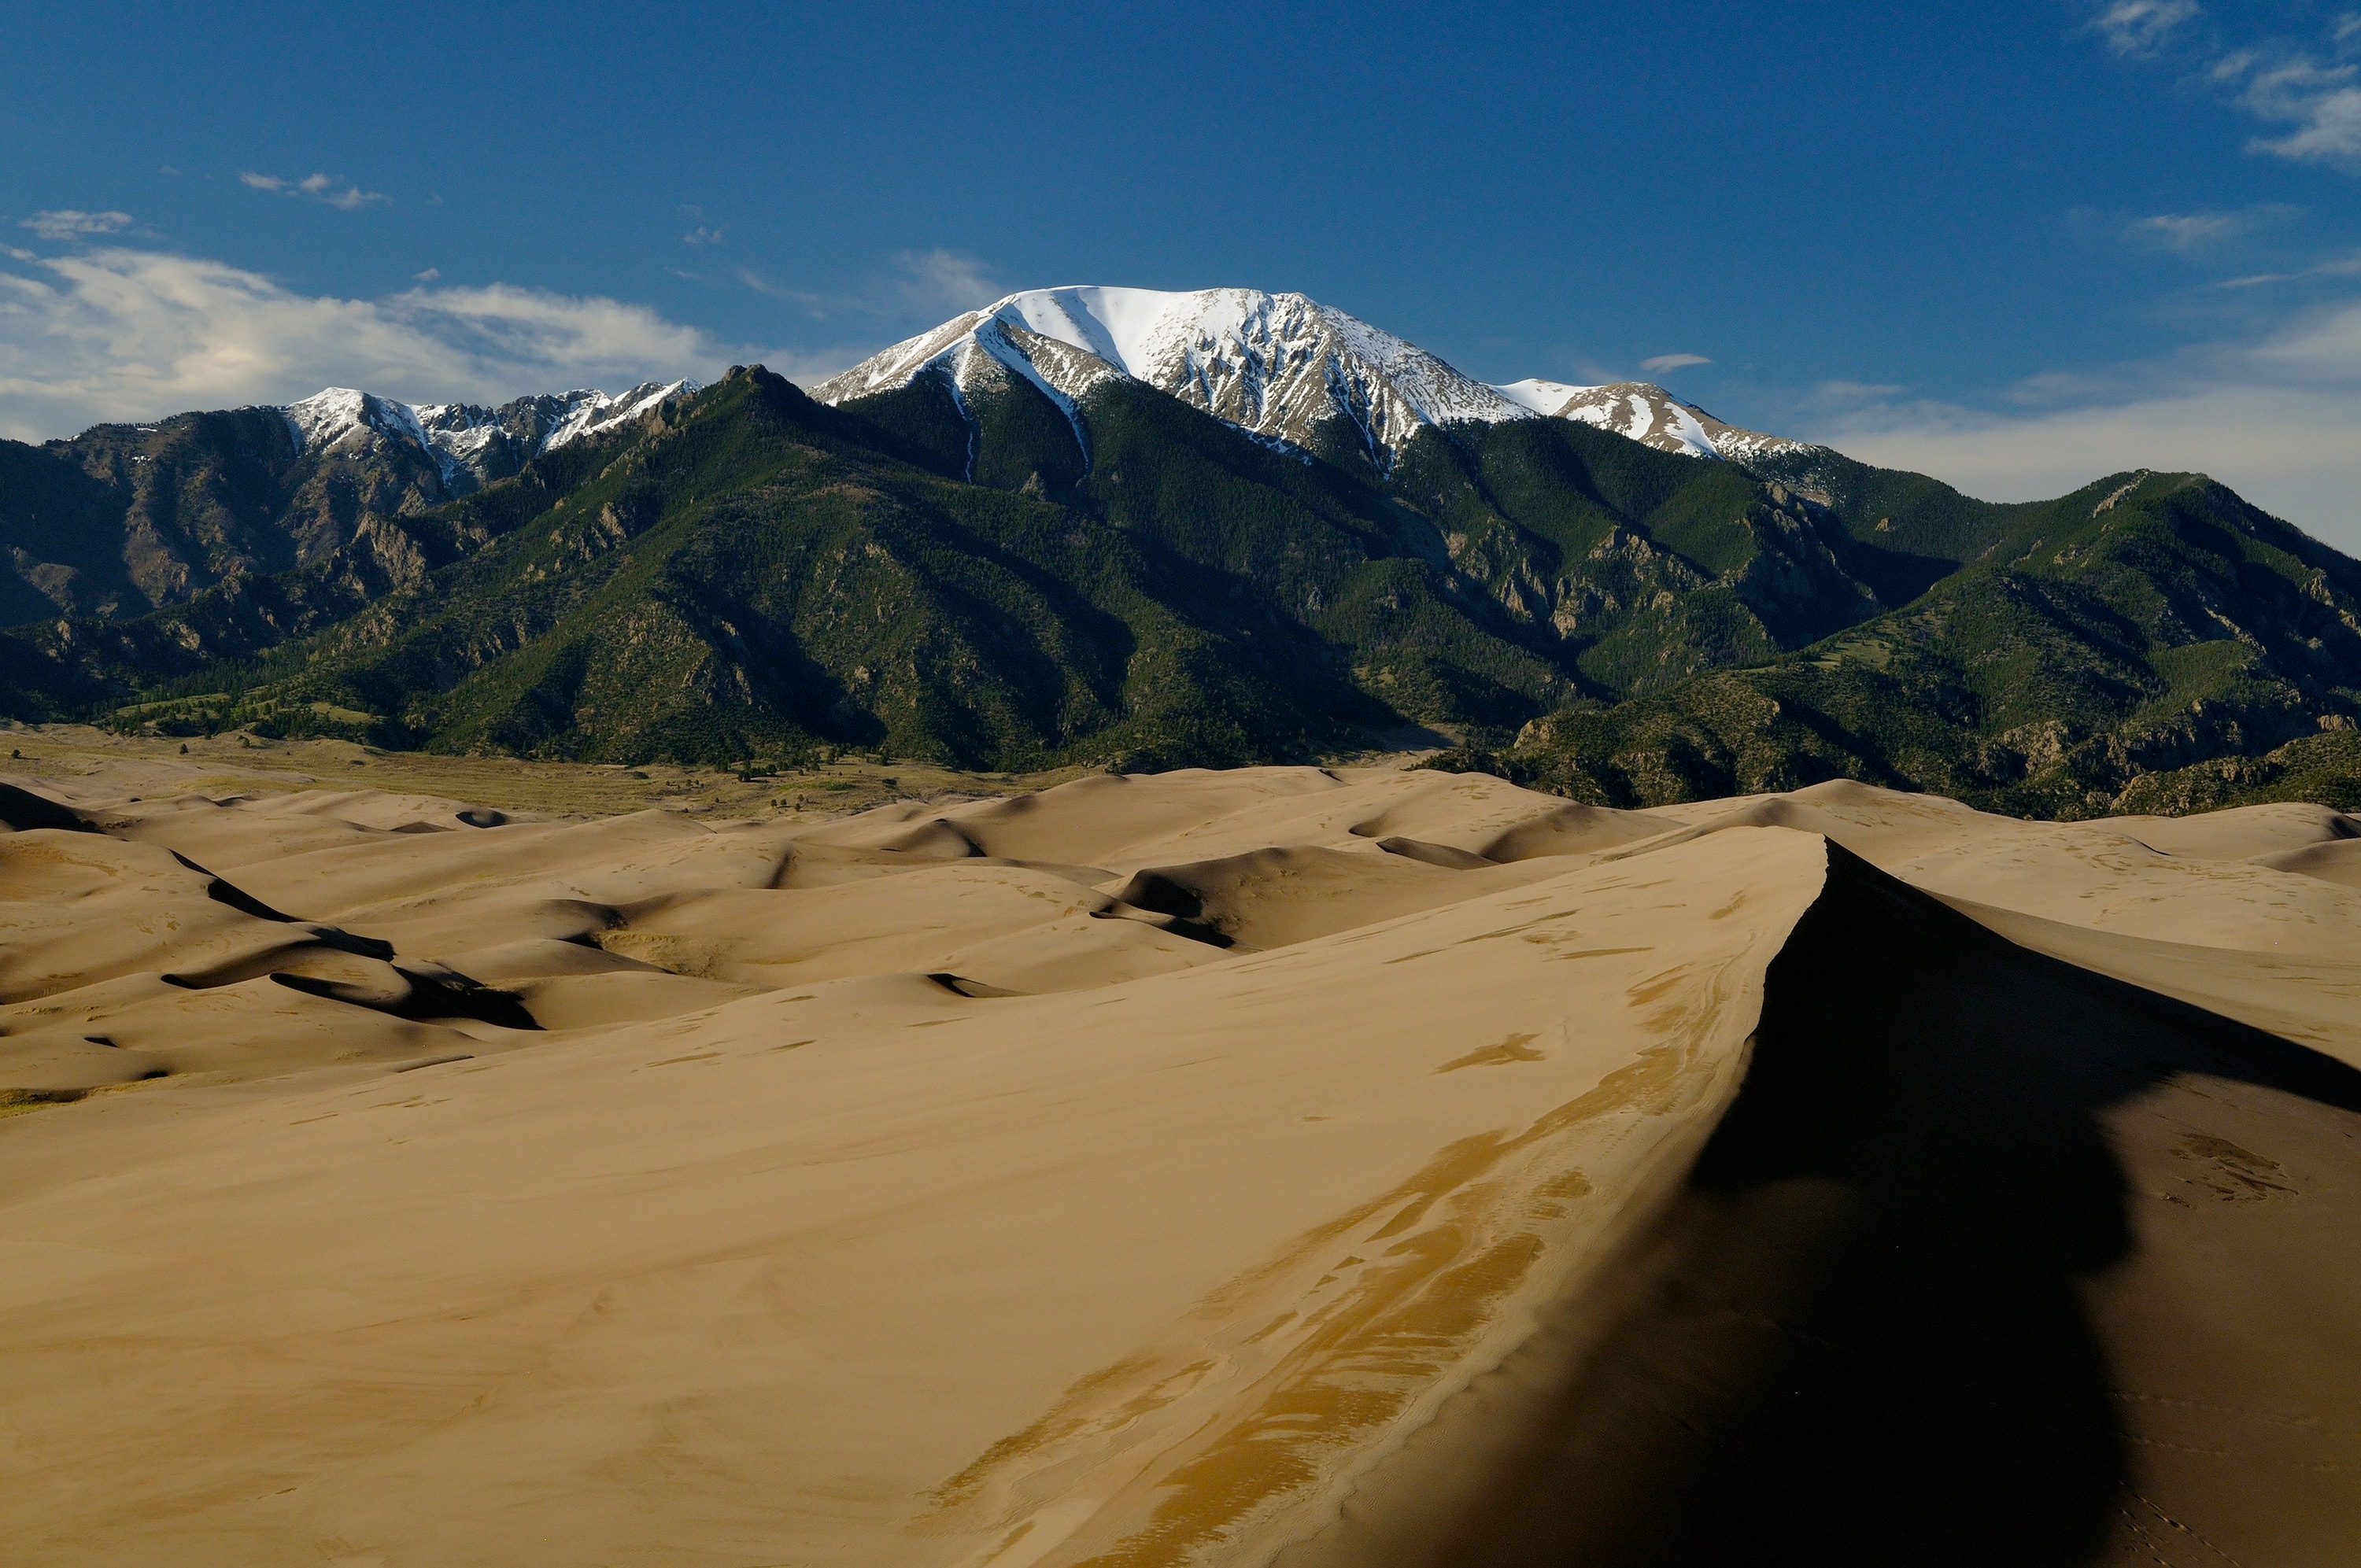 <div class='title'>           Mount Herard & the Dunes         </div>                 <div class='description'>           Mount Herard rises above the dunefield in Great Sand Dunes National Park & Preserve         </div>